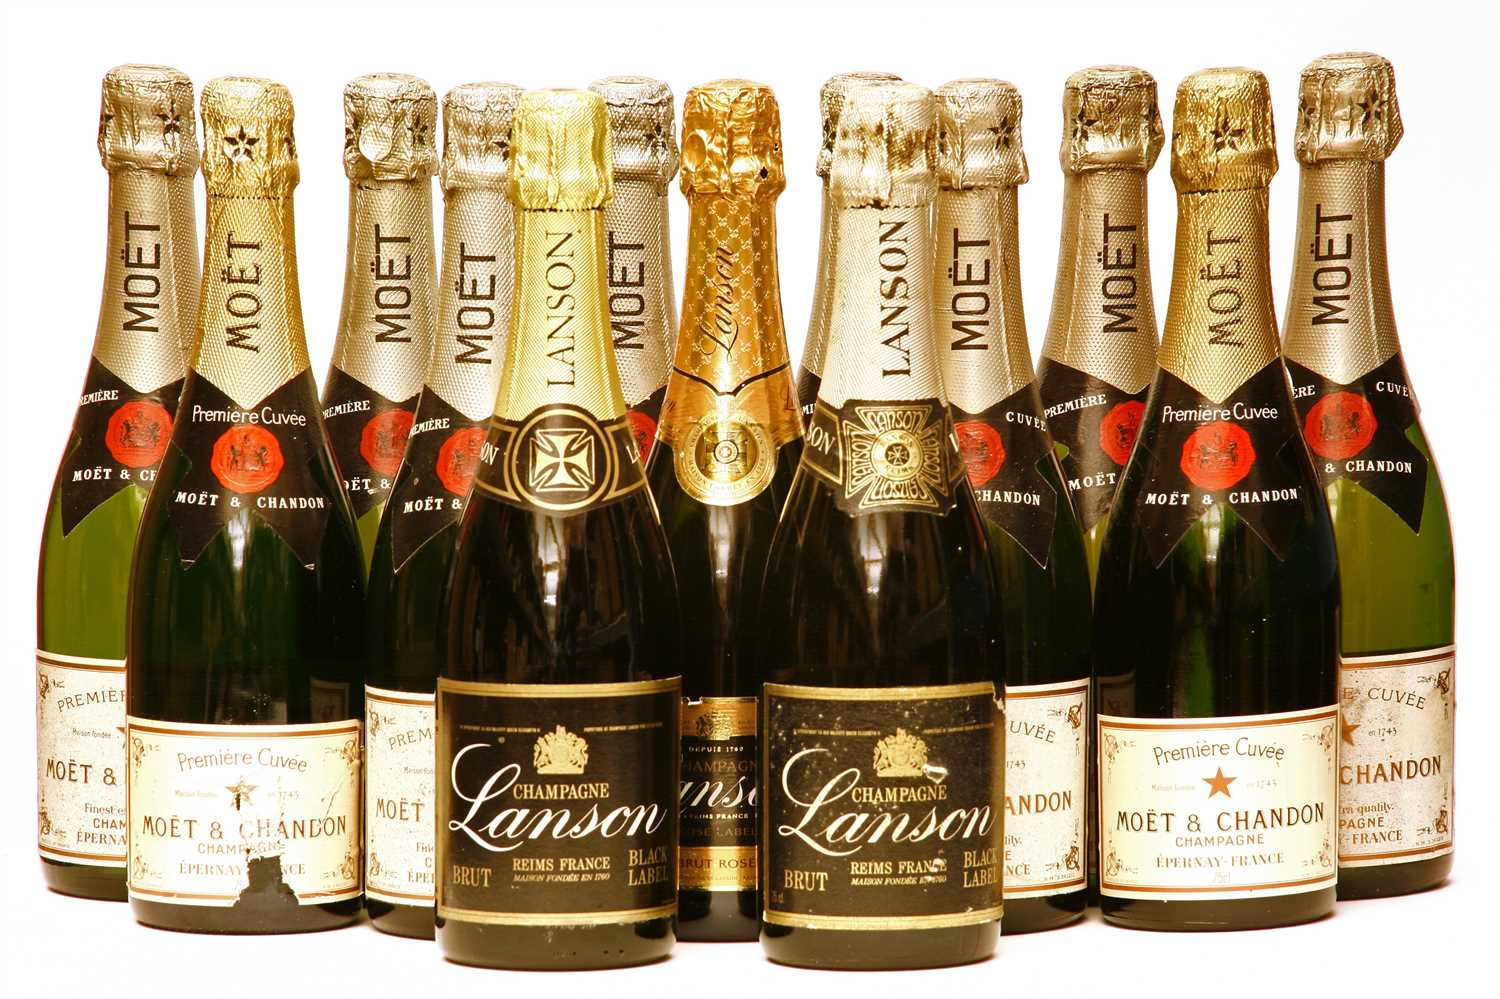 Lot 30 - Assorted non-vintage Champagne: Moet & Chandon, ten bottles, Lanson, three bottles